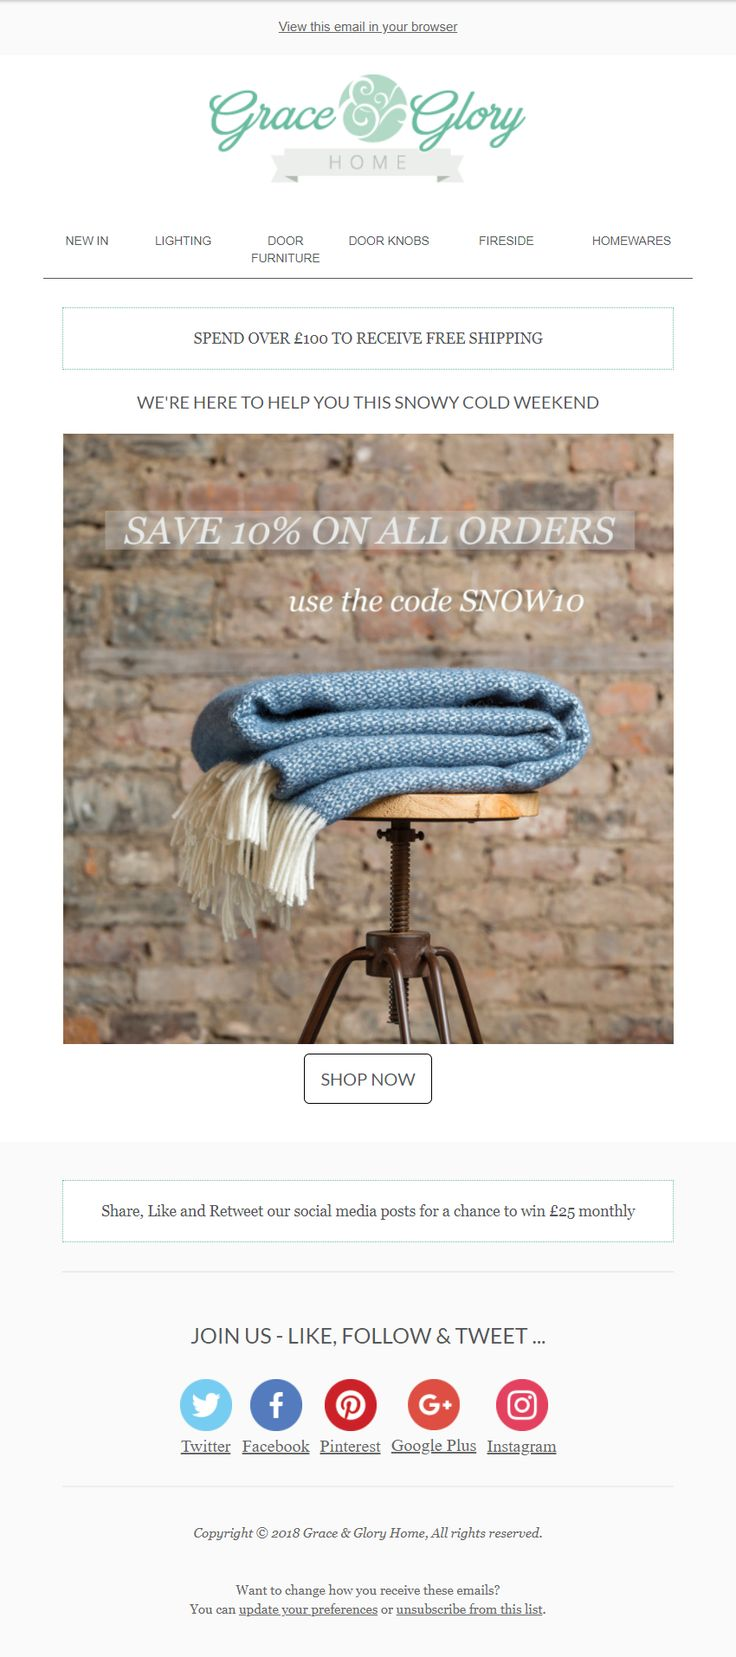 Snowy Weather email with discount code coupon from Grace & Glory #EmailMarketing #Email #Marketing #Weather #Snow #Coupon #Retail #Home